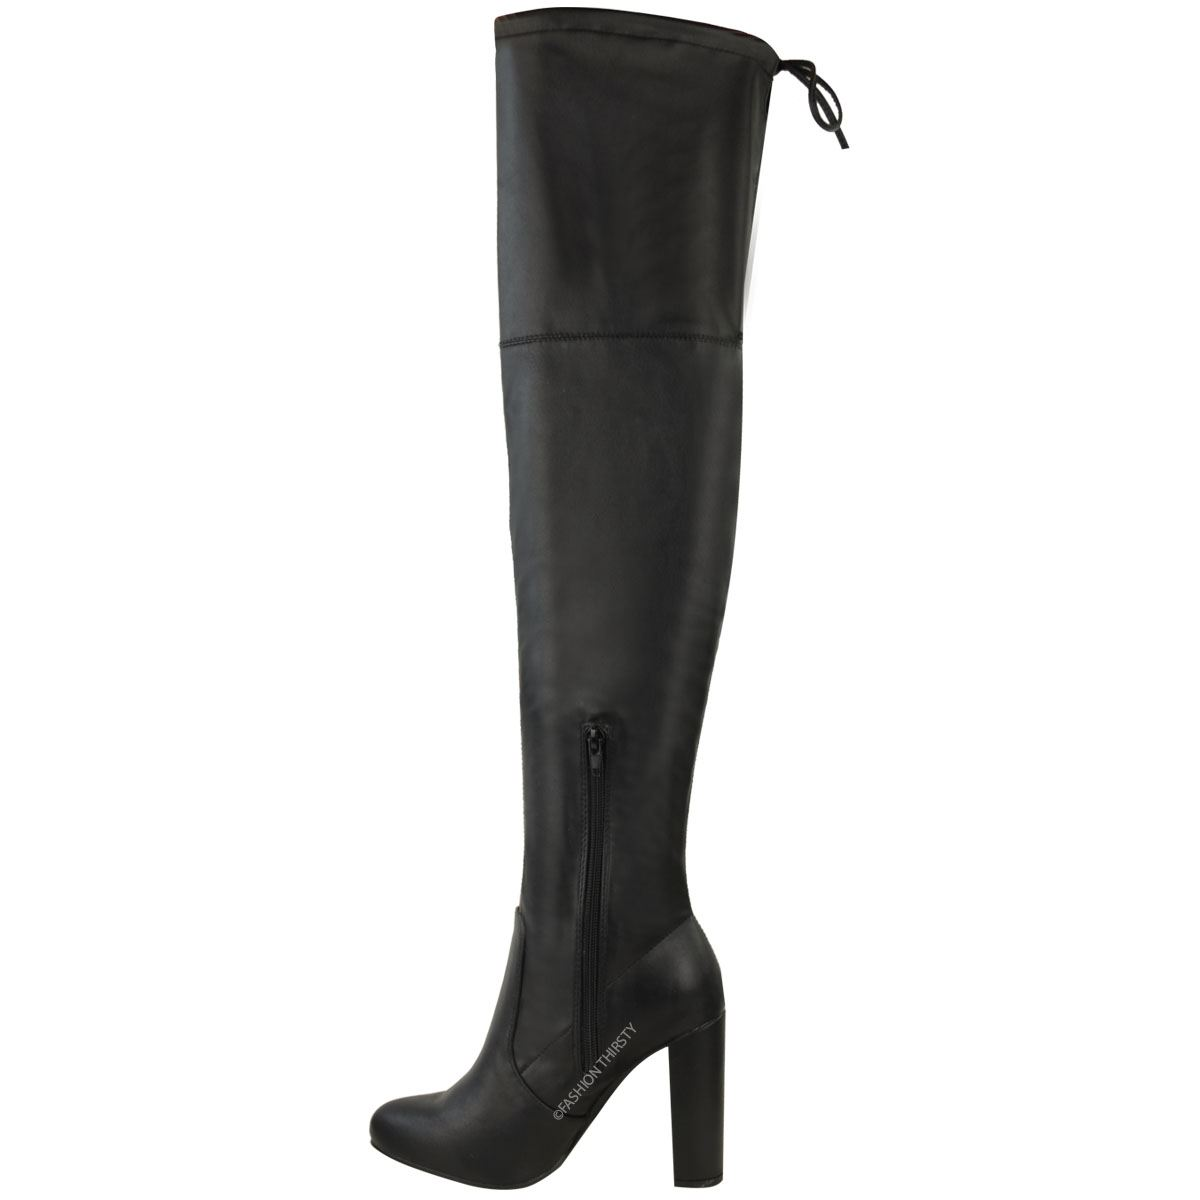 WOMENS-LADIES-THIGH-HIGH-BOOTS-OVER-THE-KNEE-PARTY-STRETCH-BLOCK-MID-HEEL-SIZE